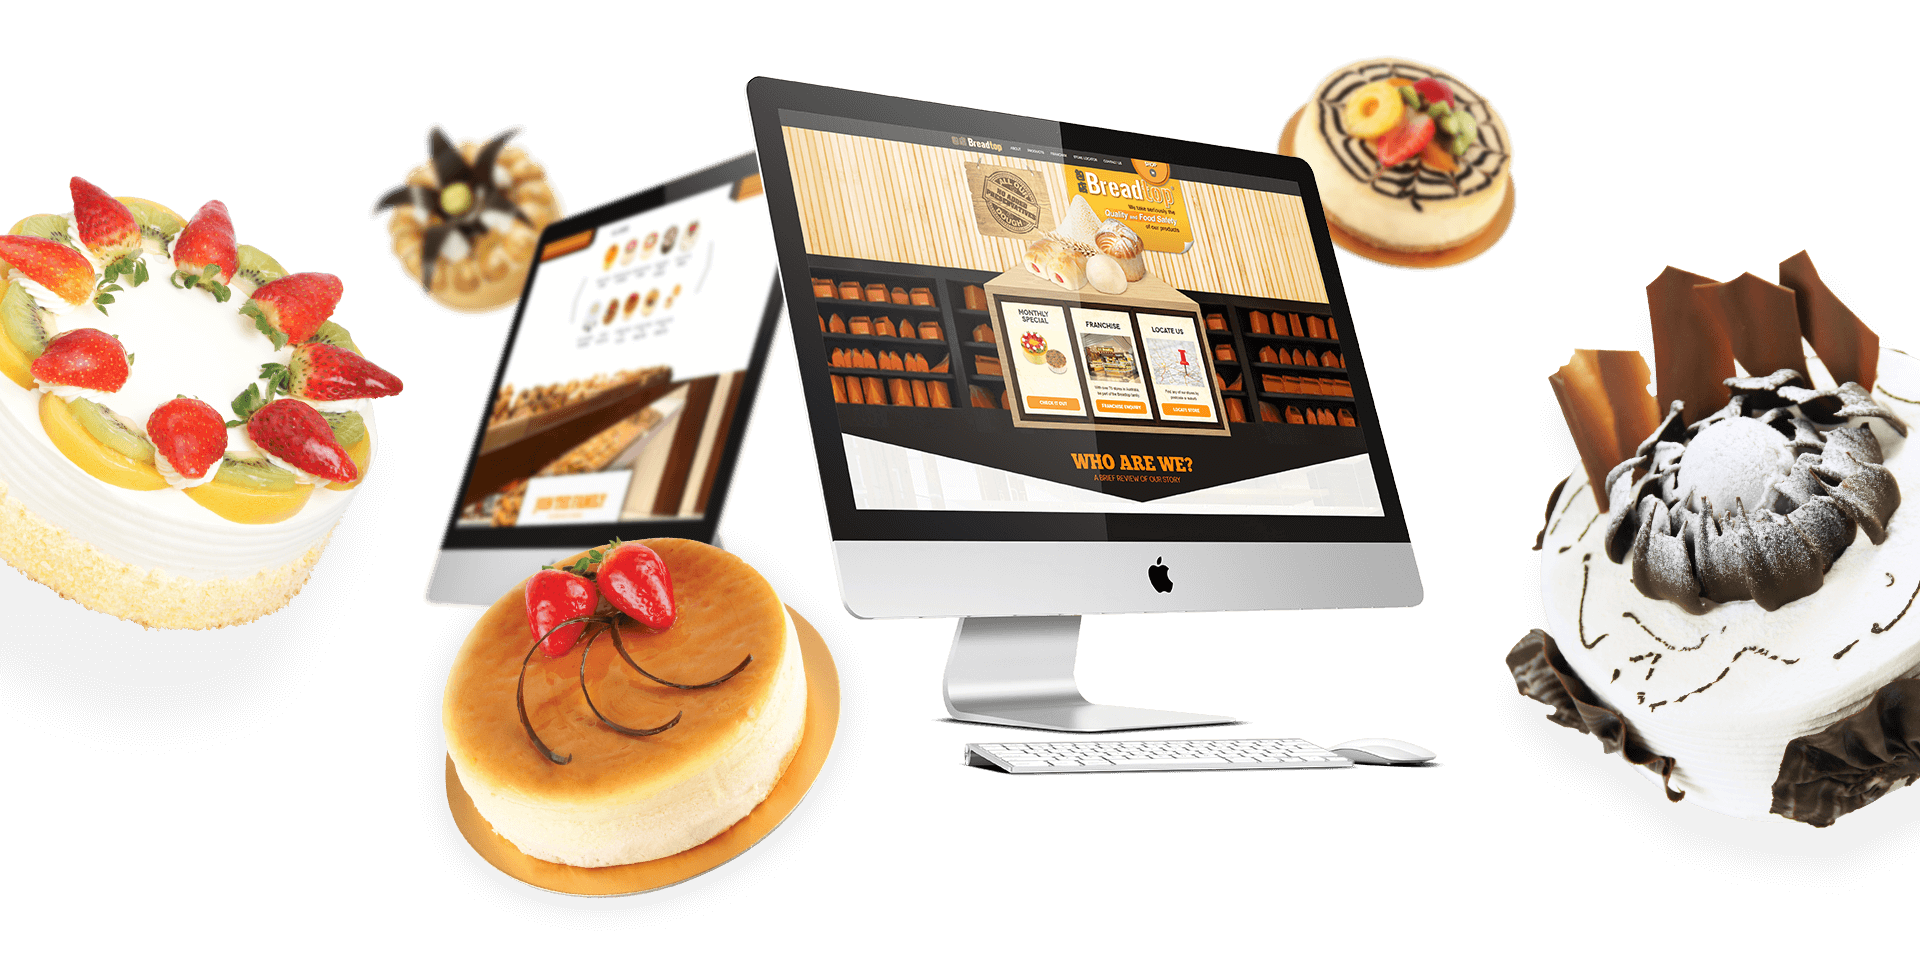 Desktop Views of Breadtop Website Home